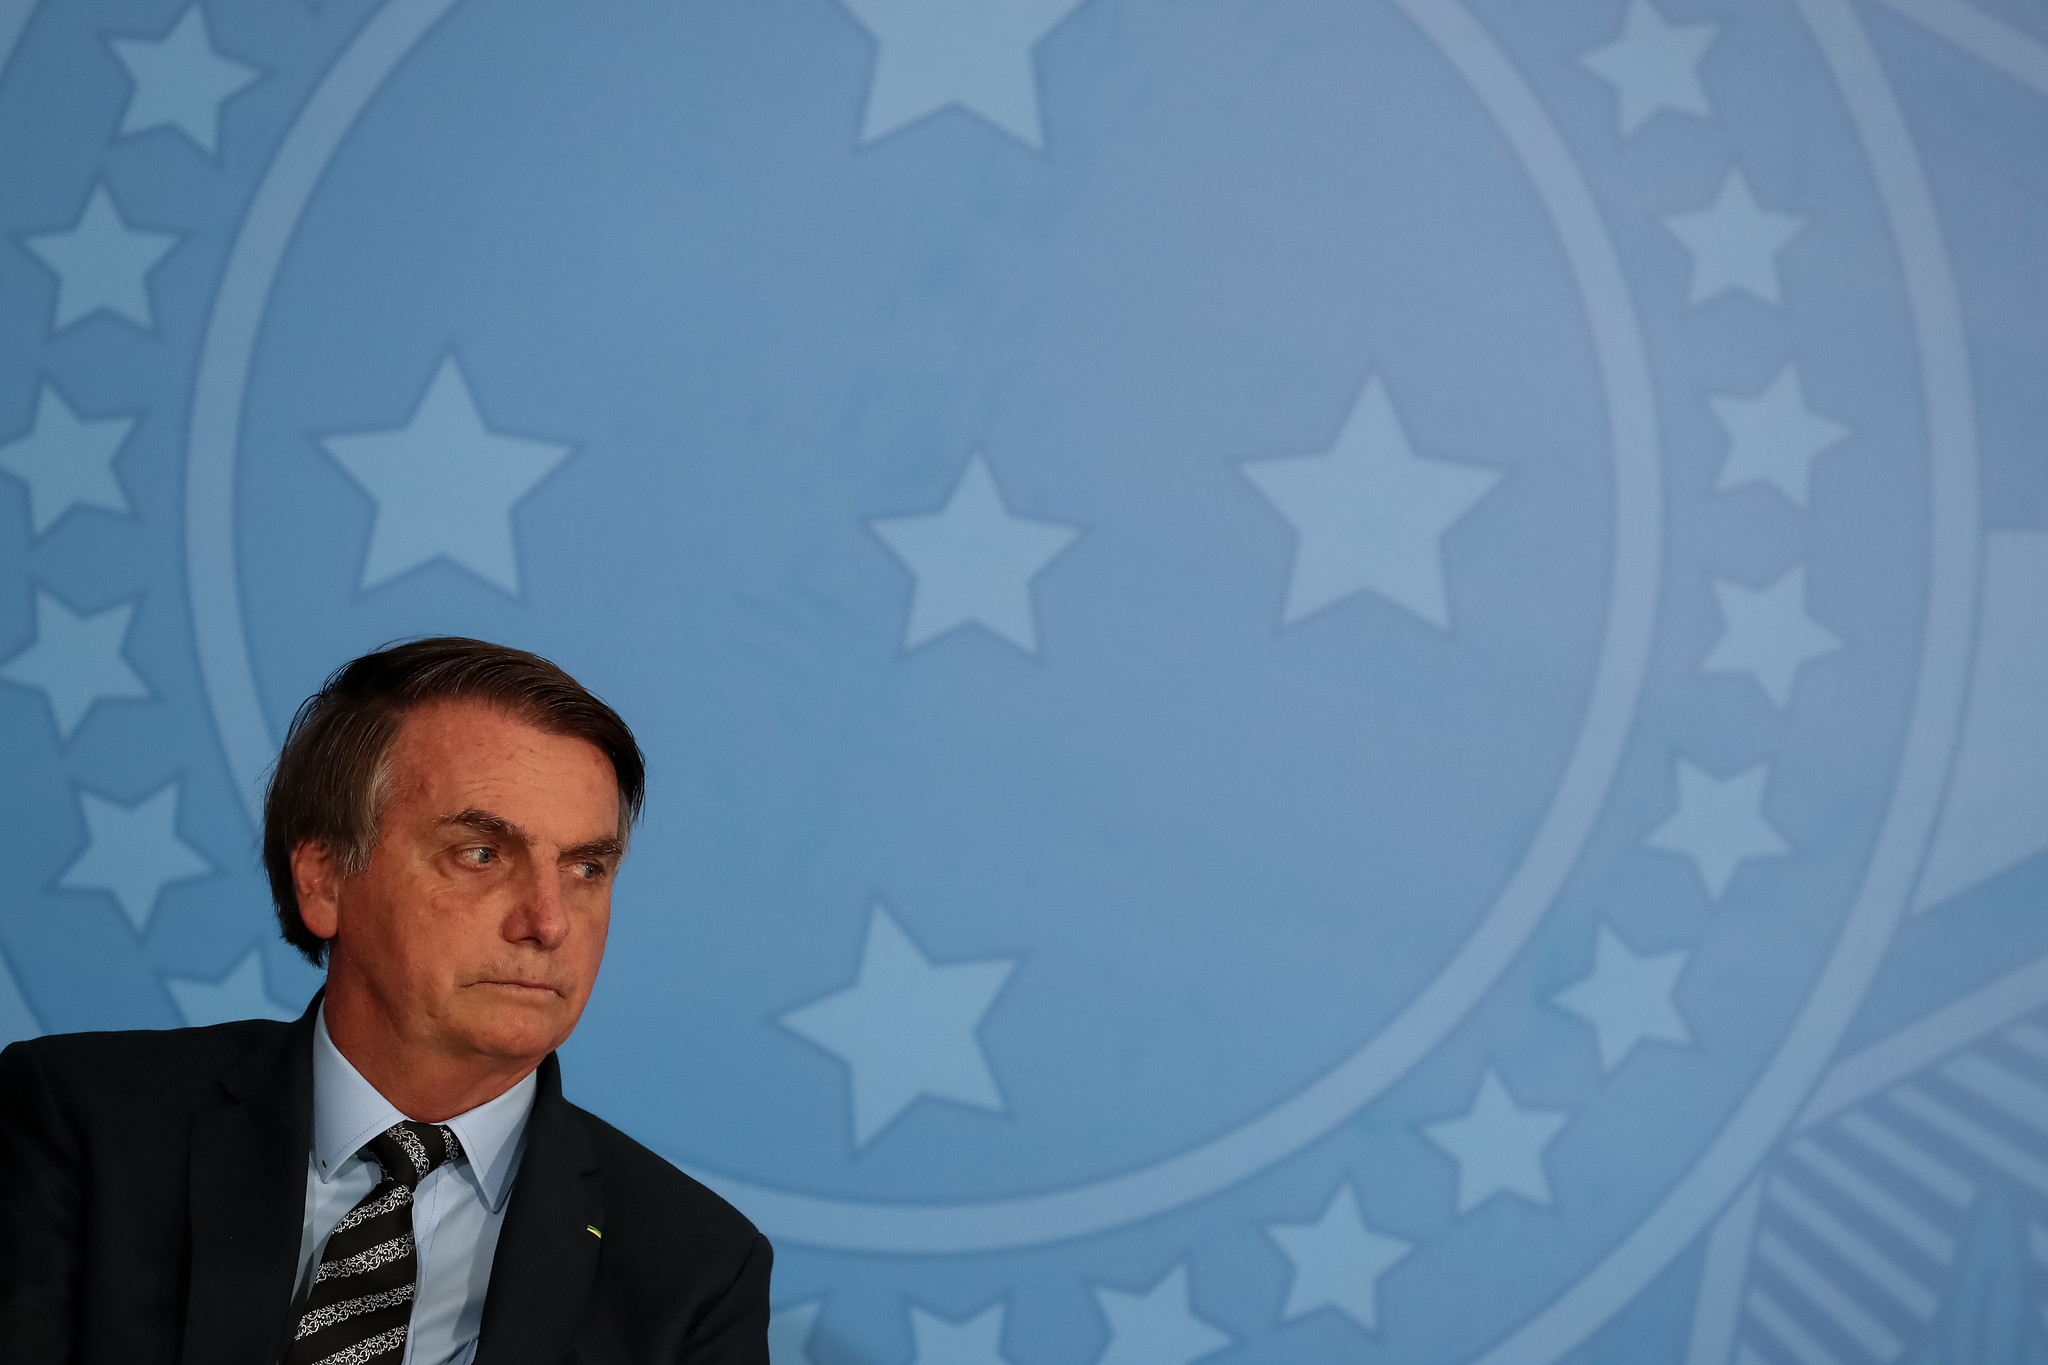 Brazil's regulatory agencies will have plenty of vacancies in 2020. Meaning that Jair Bolsonaro will reshape them—as long as he plays ball with the Senate.